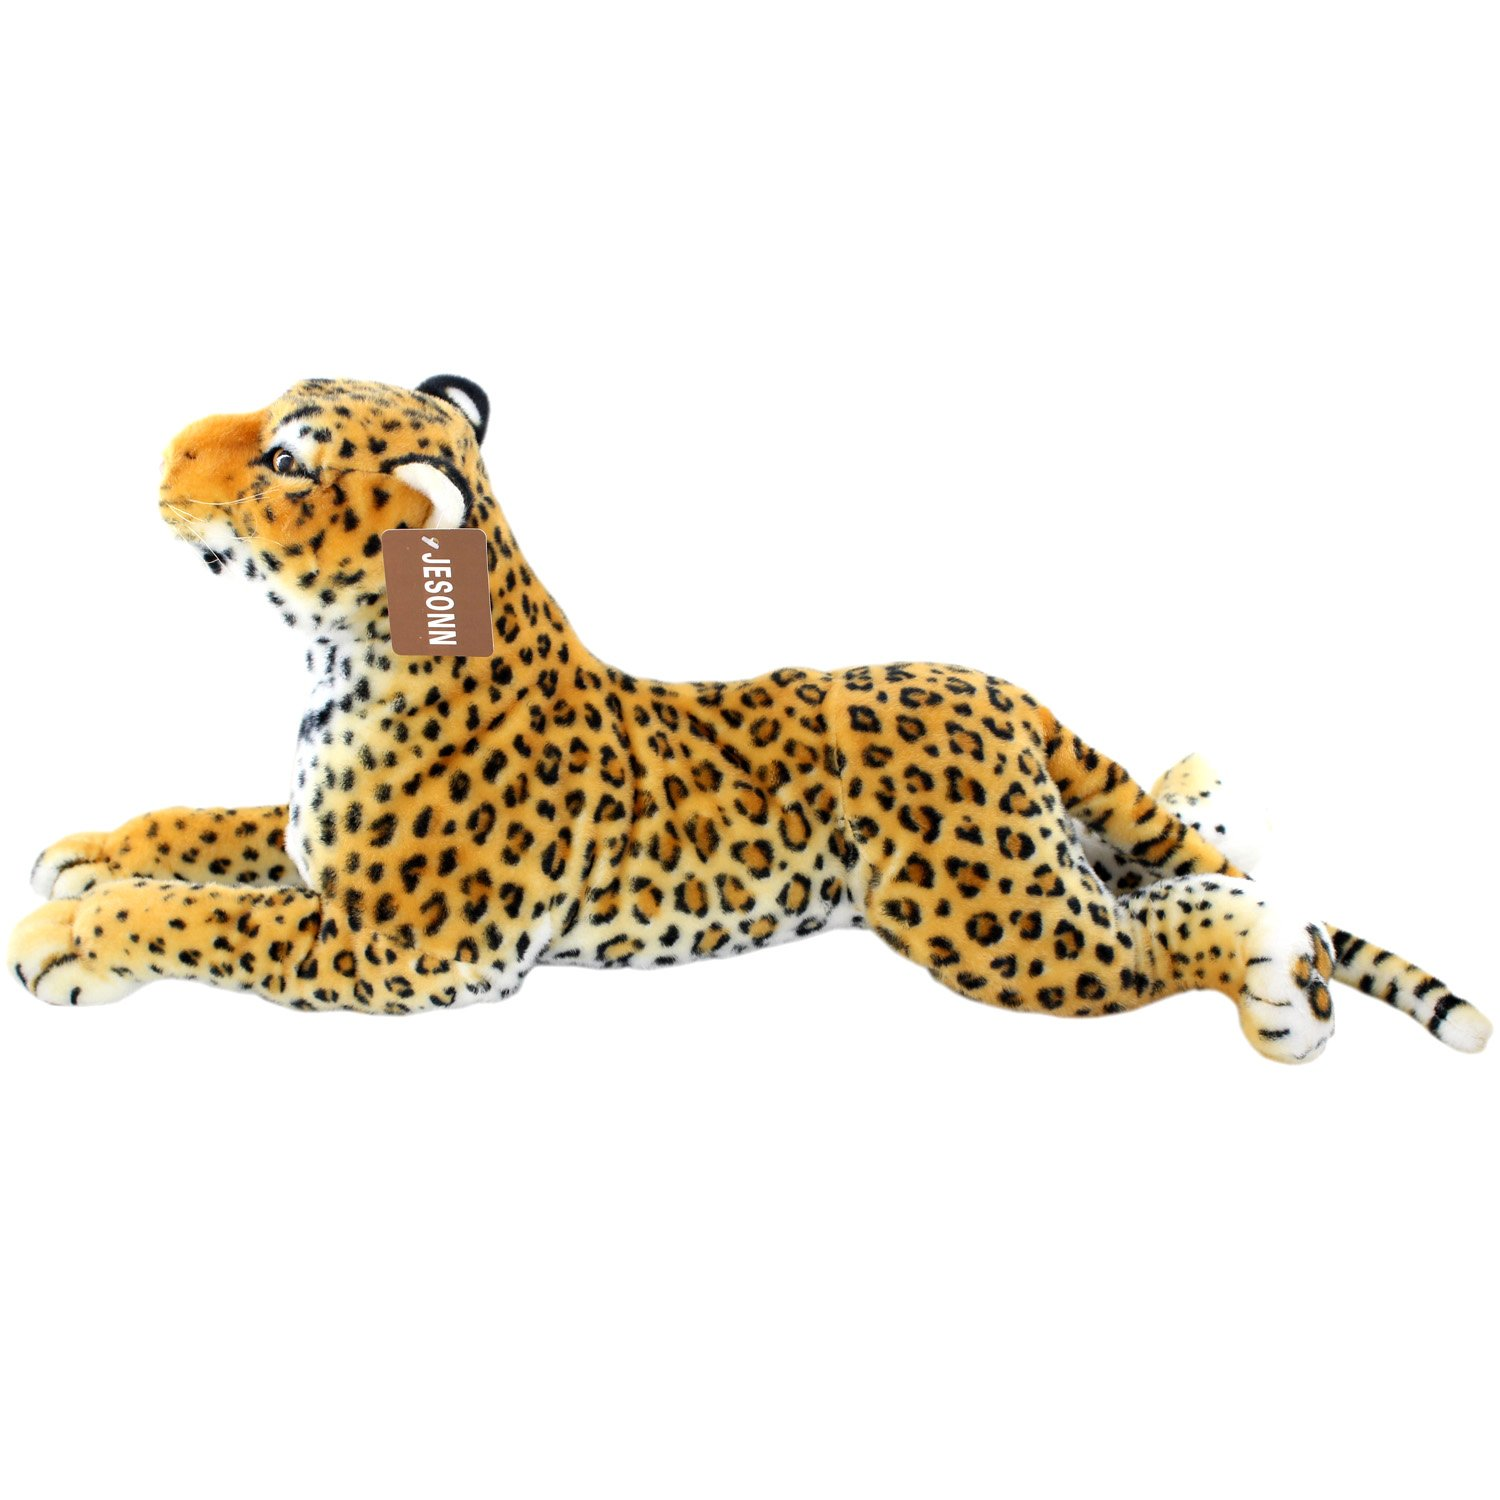 Jesonn Realistic Soft Stuffed Animals Grovel Spotted Leopard Toys Plush for Baby Pillow and Kids' Gifts,23.6'' or 60CM,1PC